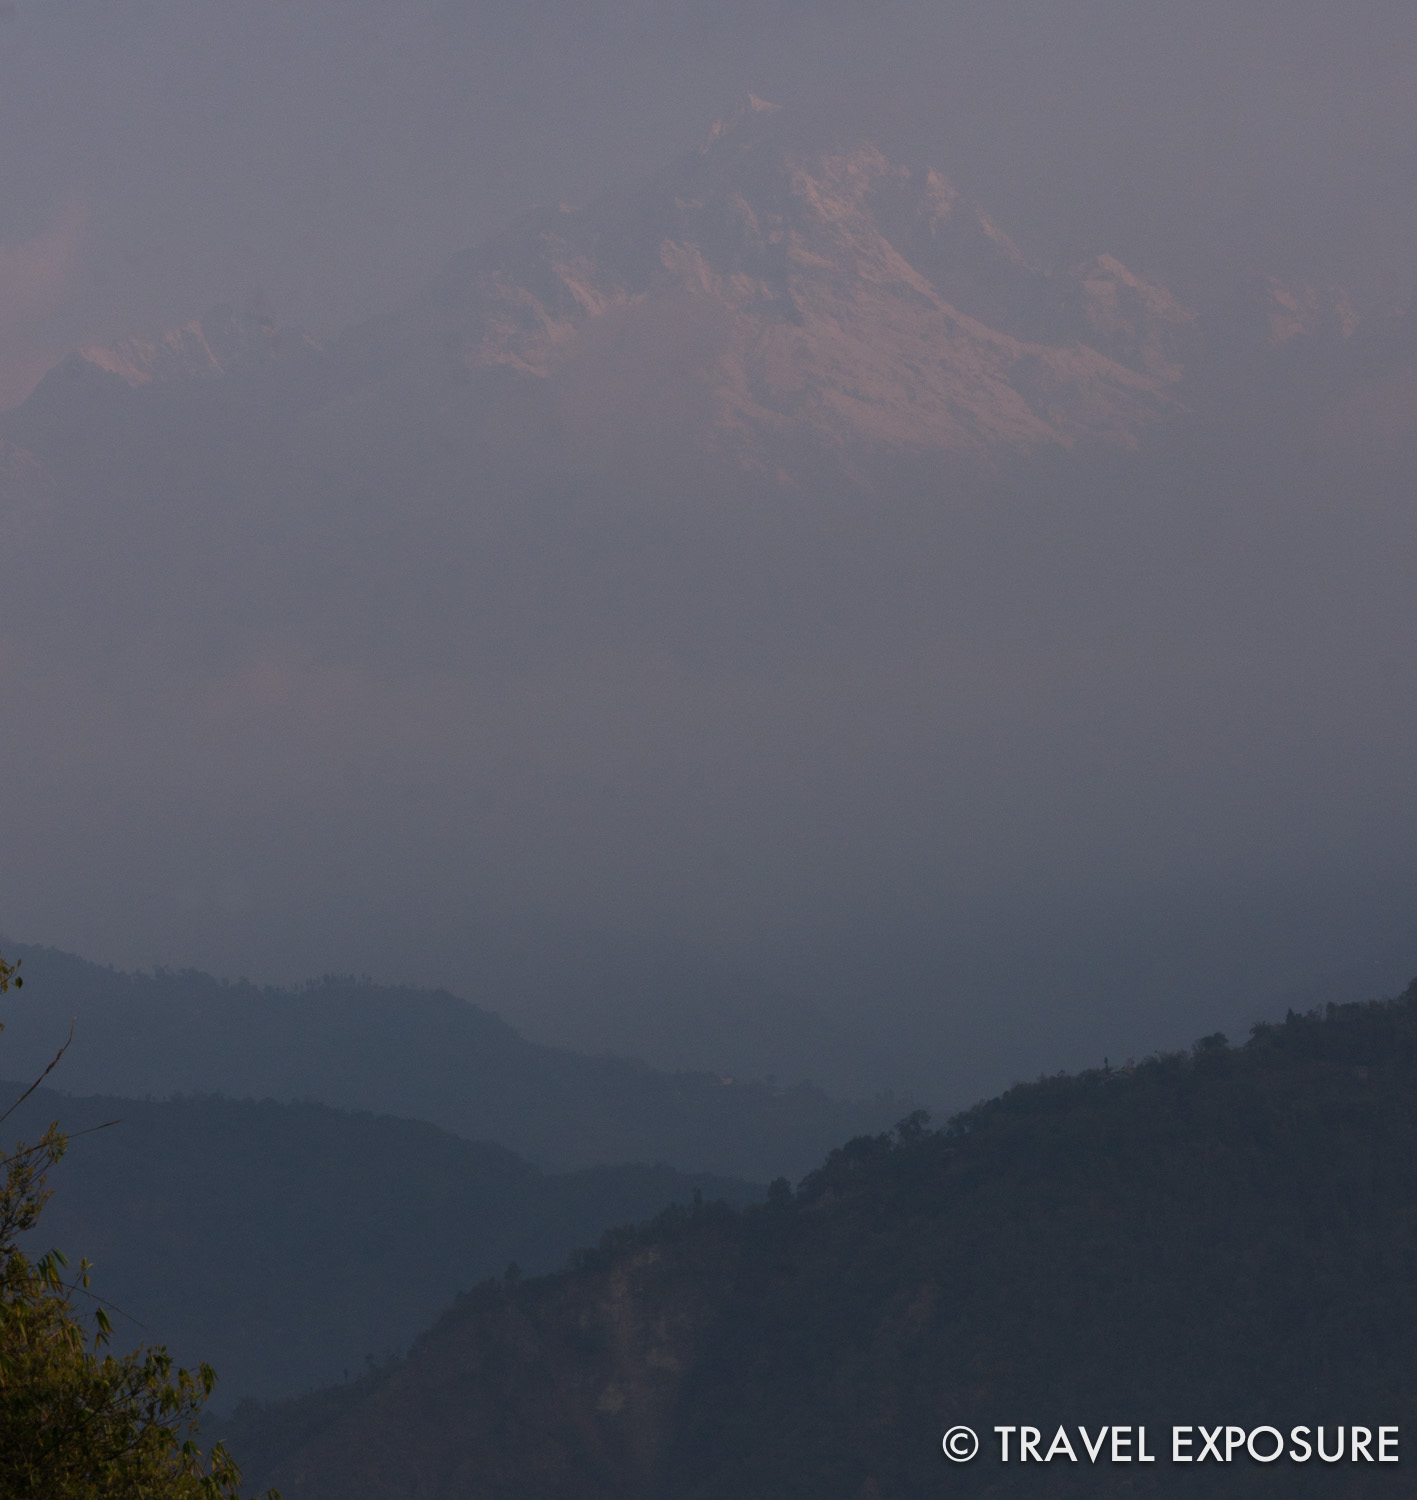 Mount Kangchenjunga eluded us for much of our time in Sikkim, but one morning in Kewzing we saw the mountains peaking through the clouds. When we caught a glimpse here and there, they barely looked real,  floating in the clouds so much higher than the other mountains.